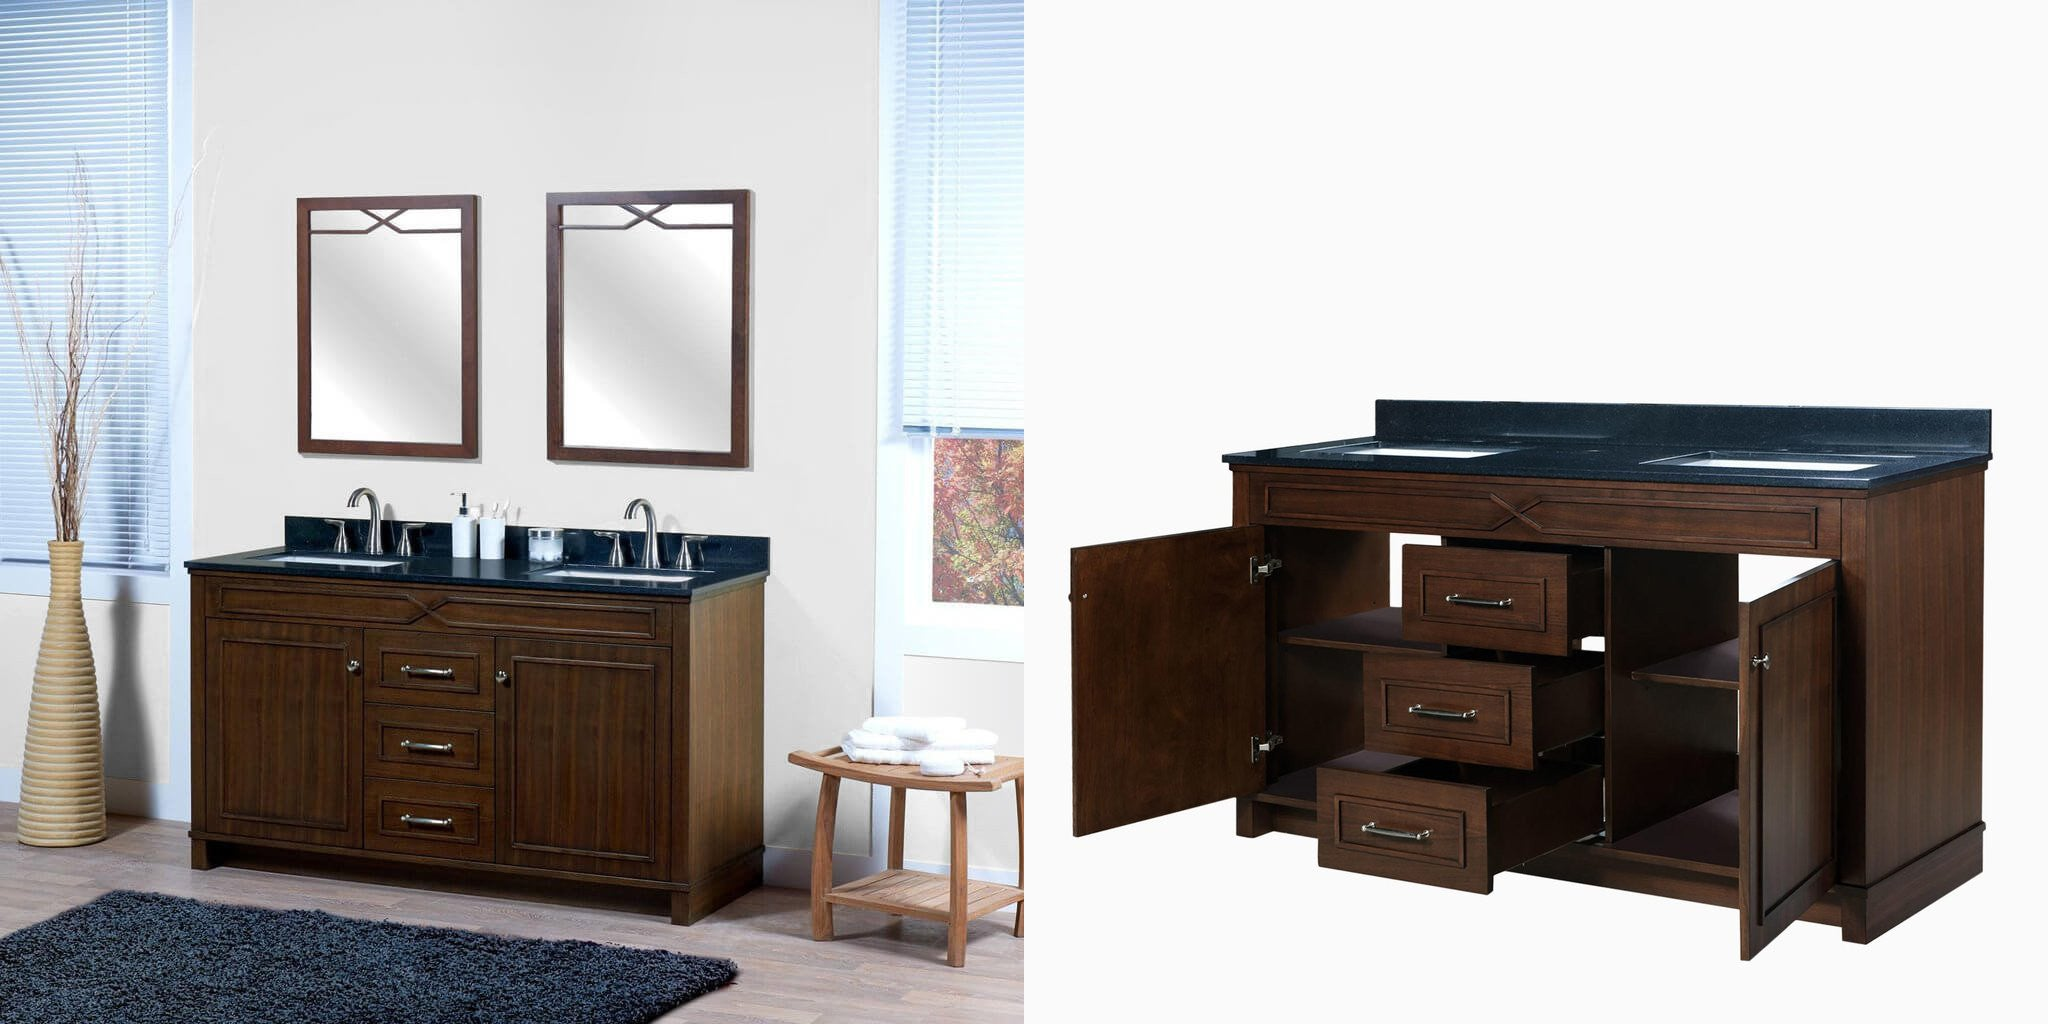 Theplete Bathroom Vanity Buying Guide Home Remodeling Design